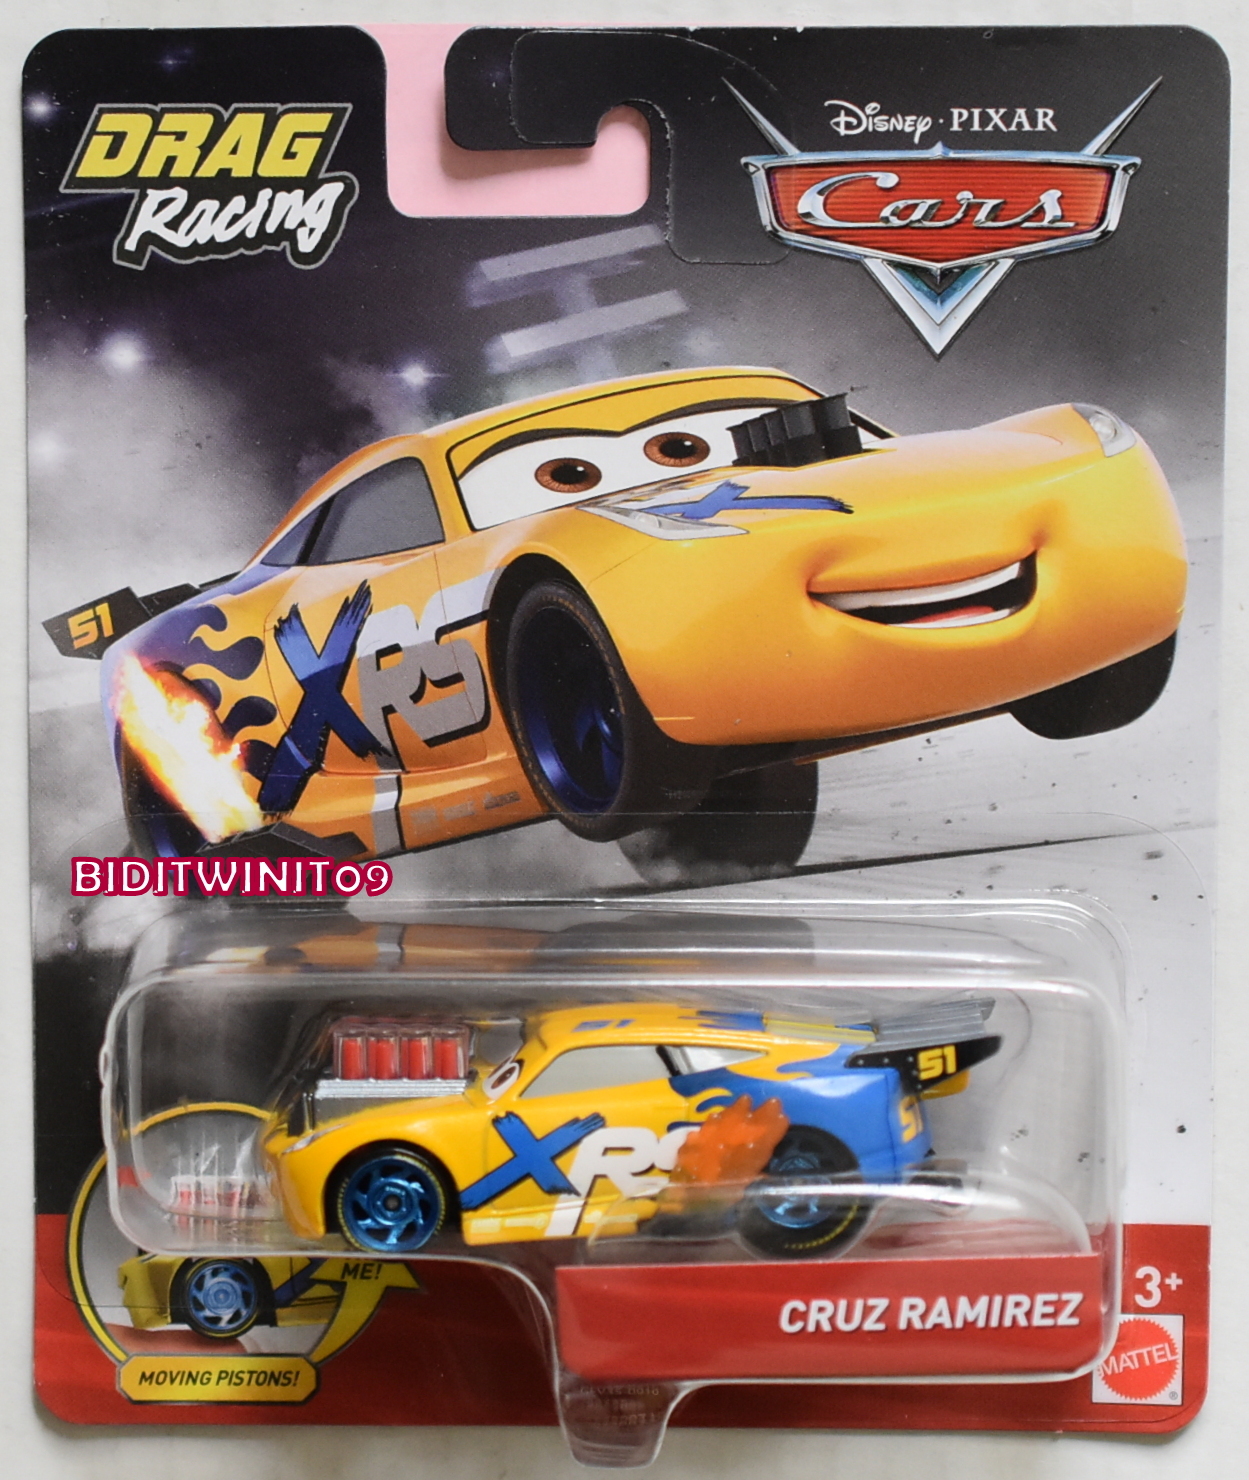 Disney Pixar Cars Drag Racing Cruz Ramirez Xrs 0018567 8 36